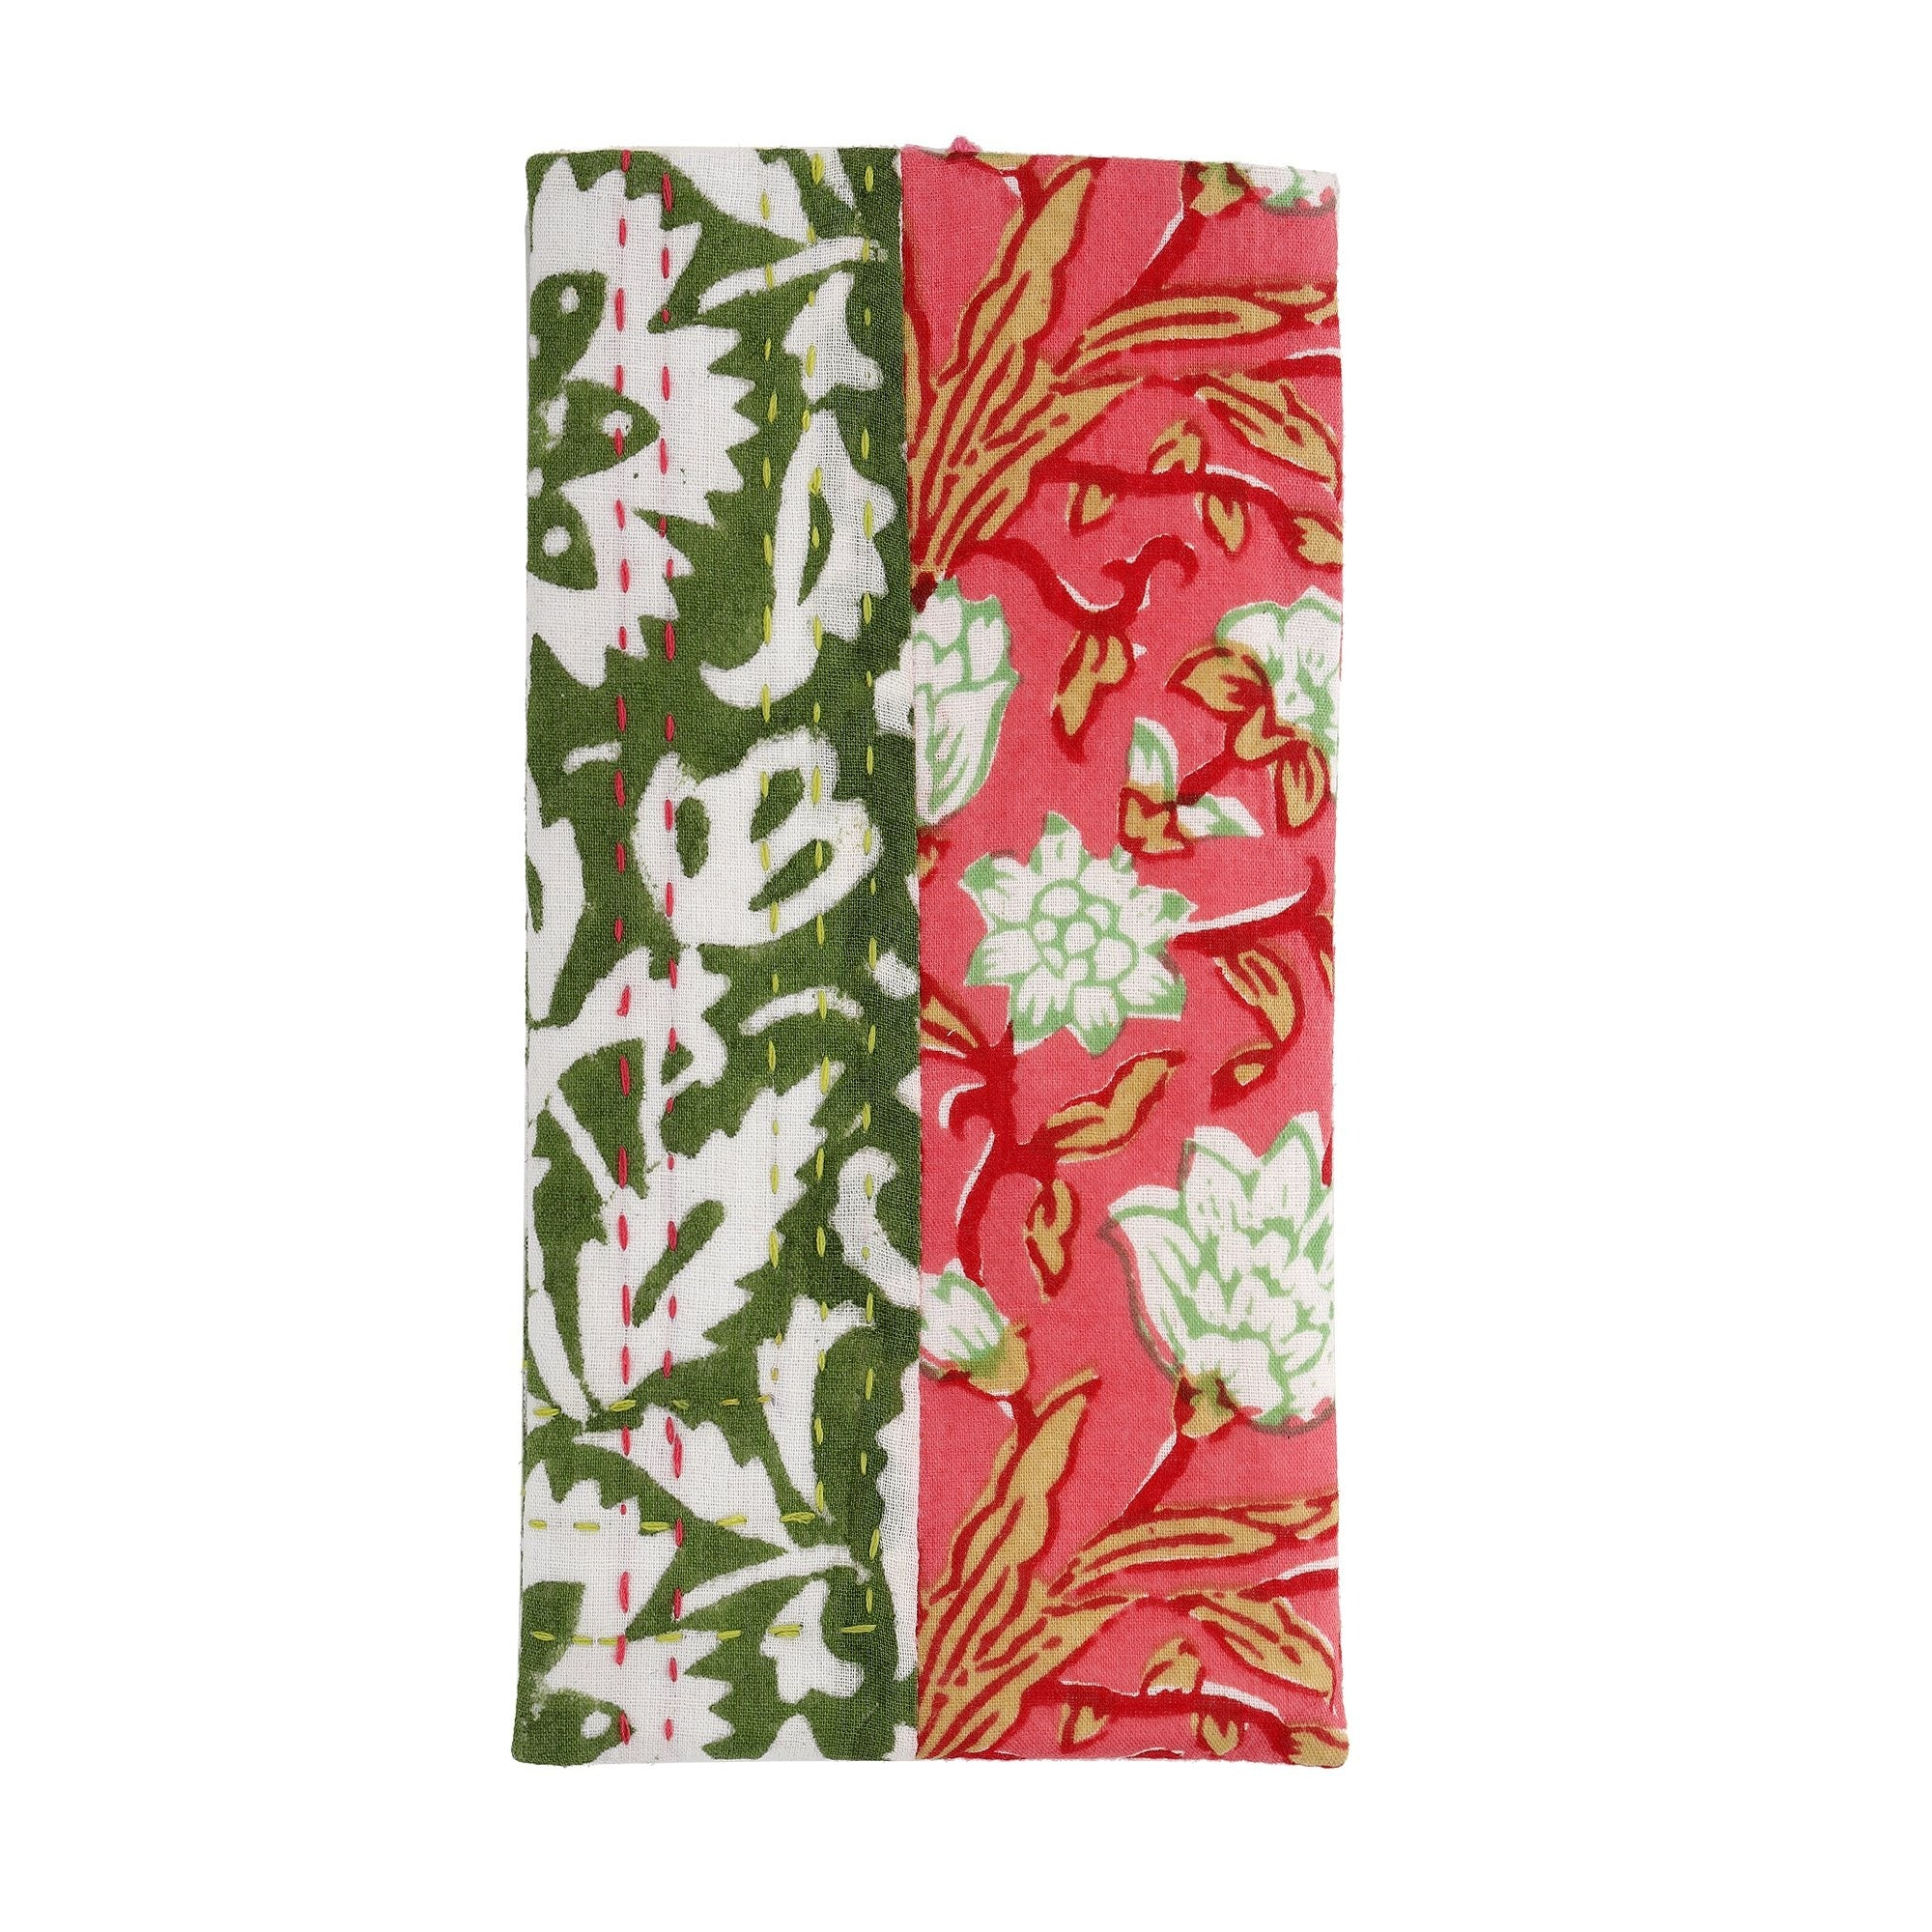 Ivy Green & Pink Floral Glasses Case